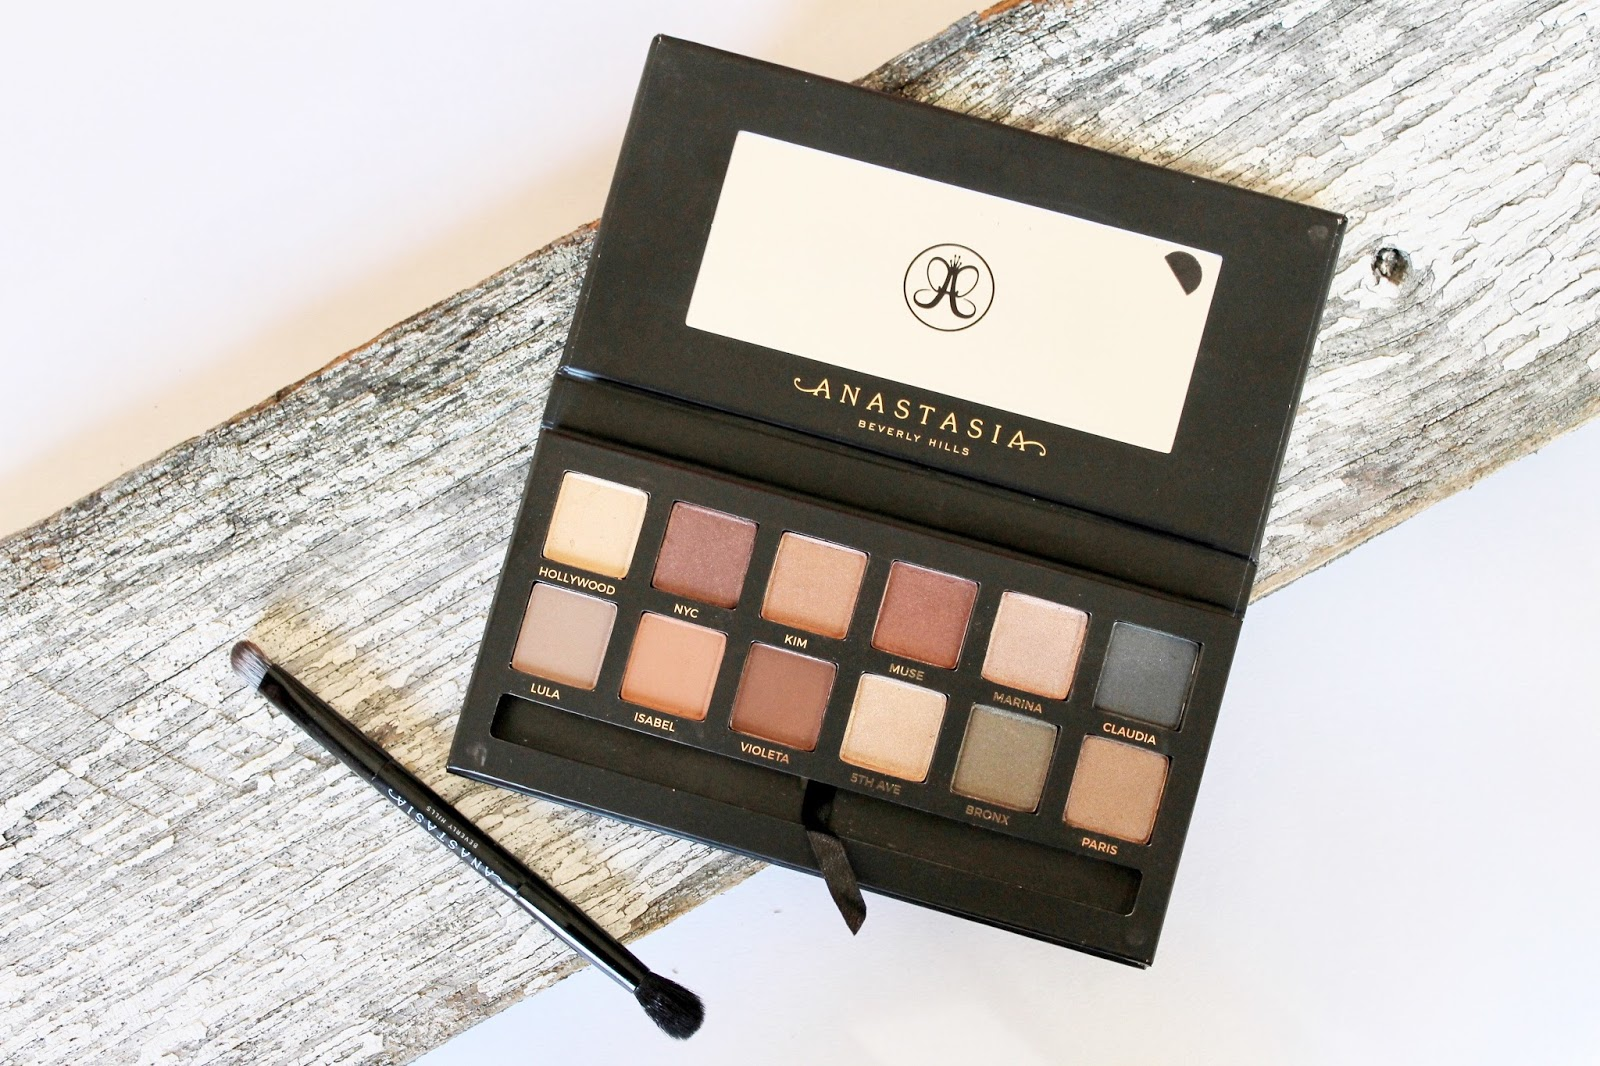 Master Palette By Mario: The Perfect Fall Palette?